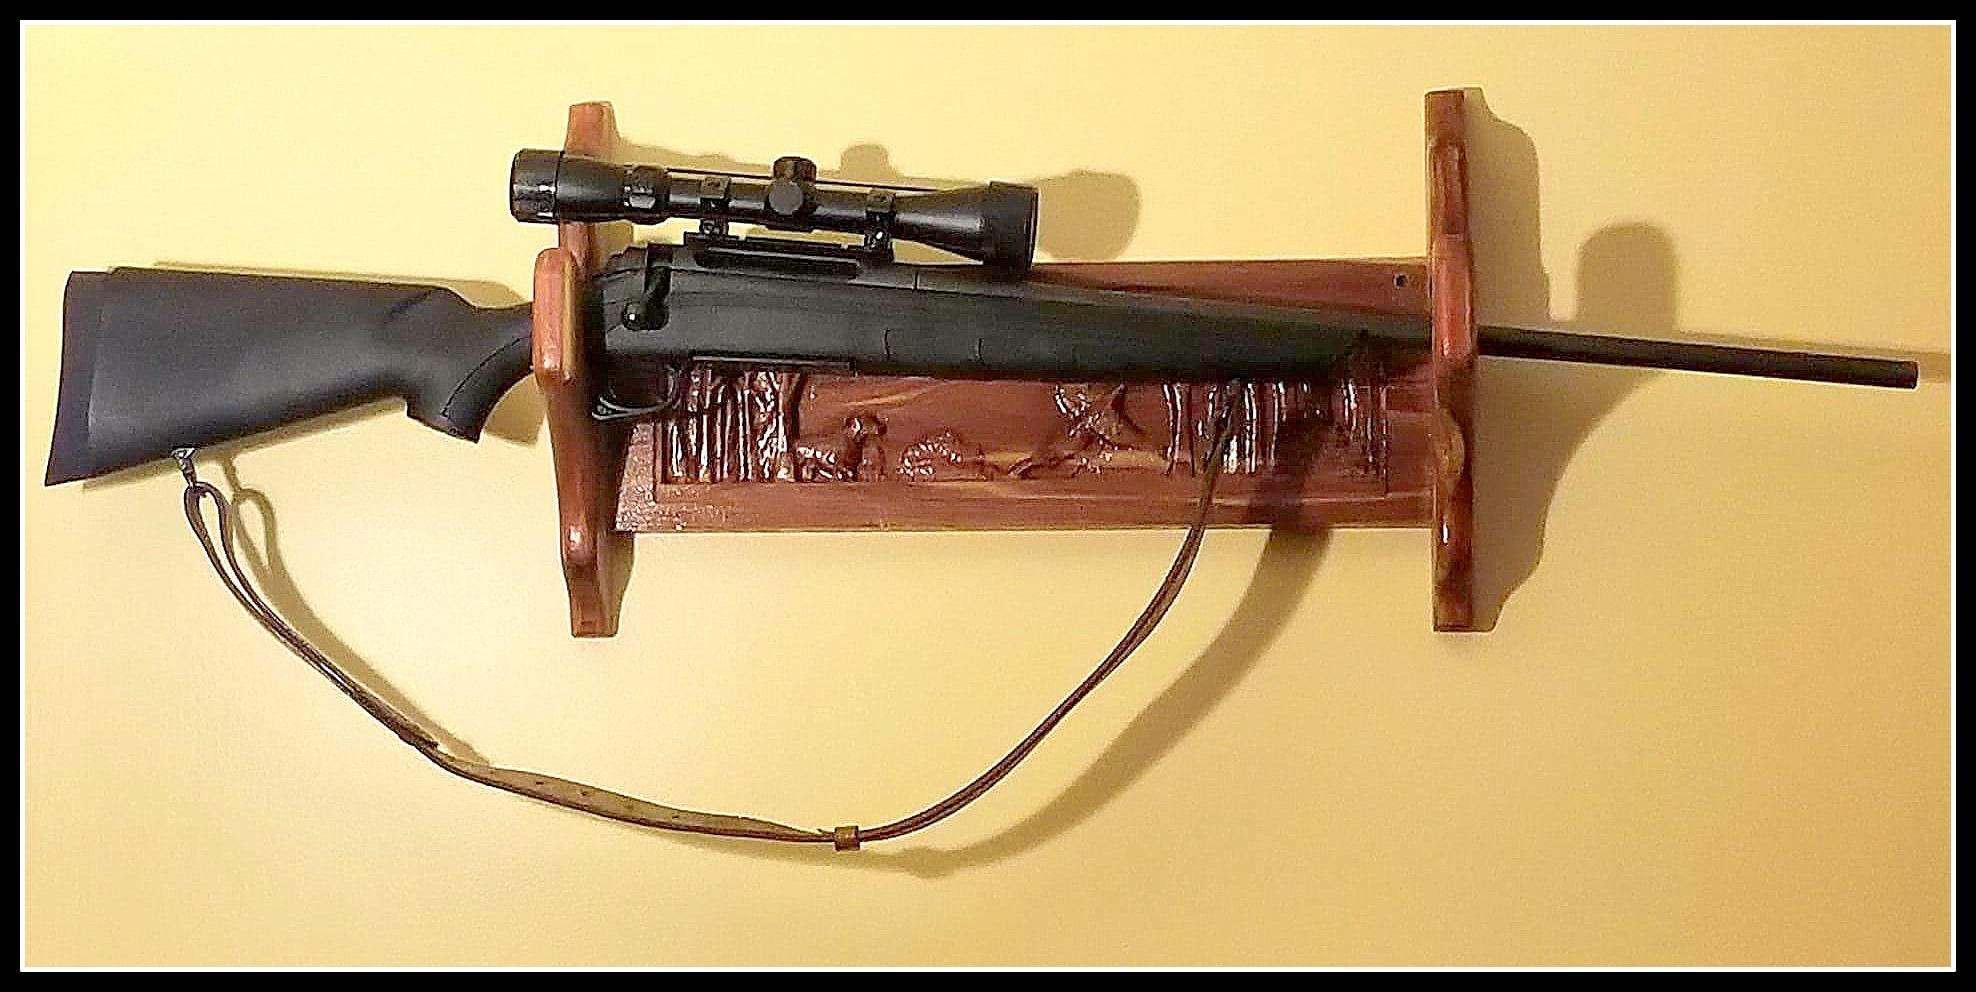 Western Red Cedar Gun Display Rack Gun Display Gun Display